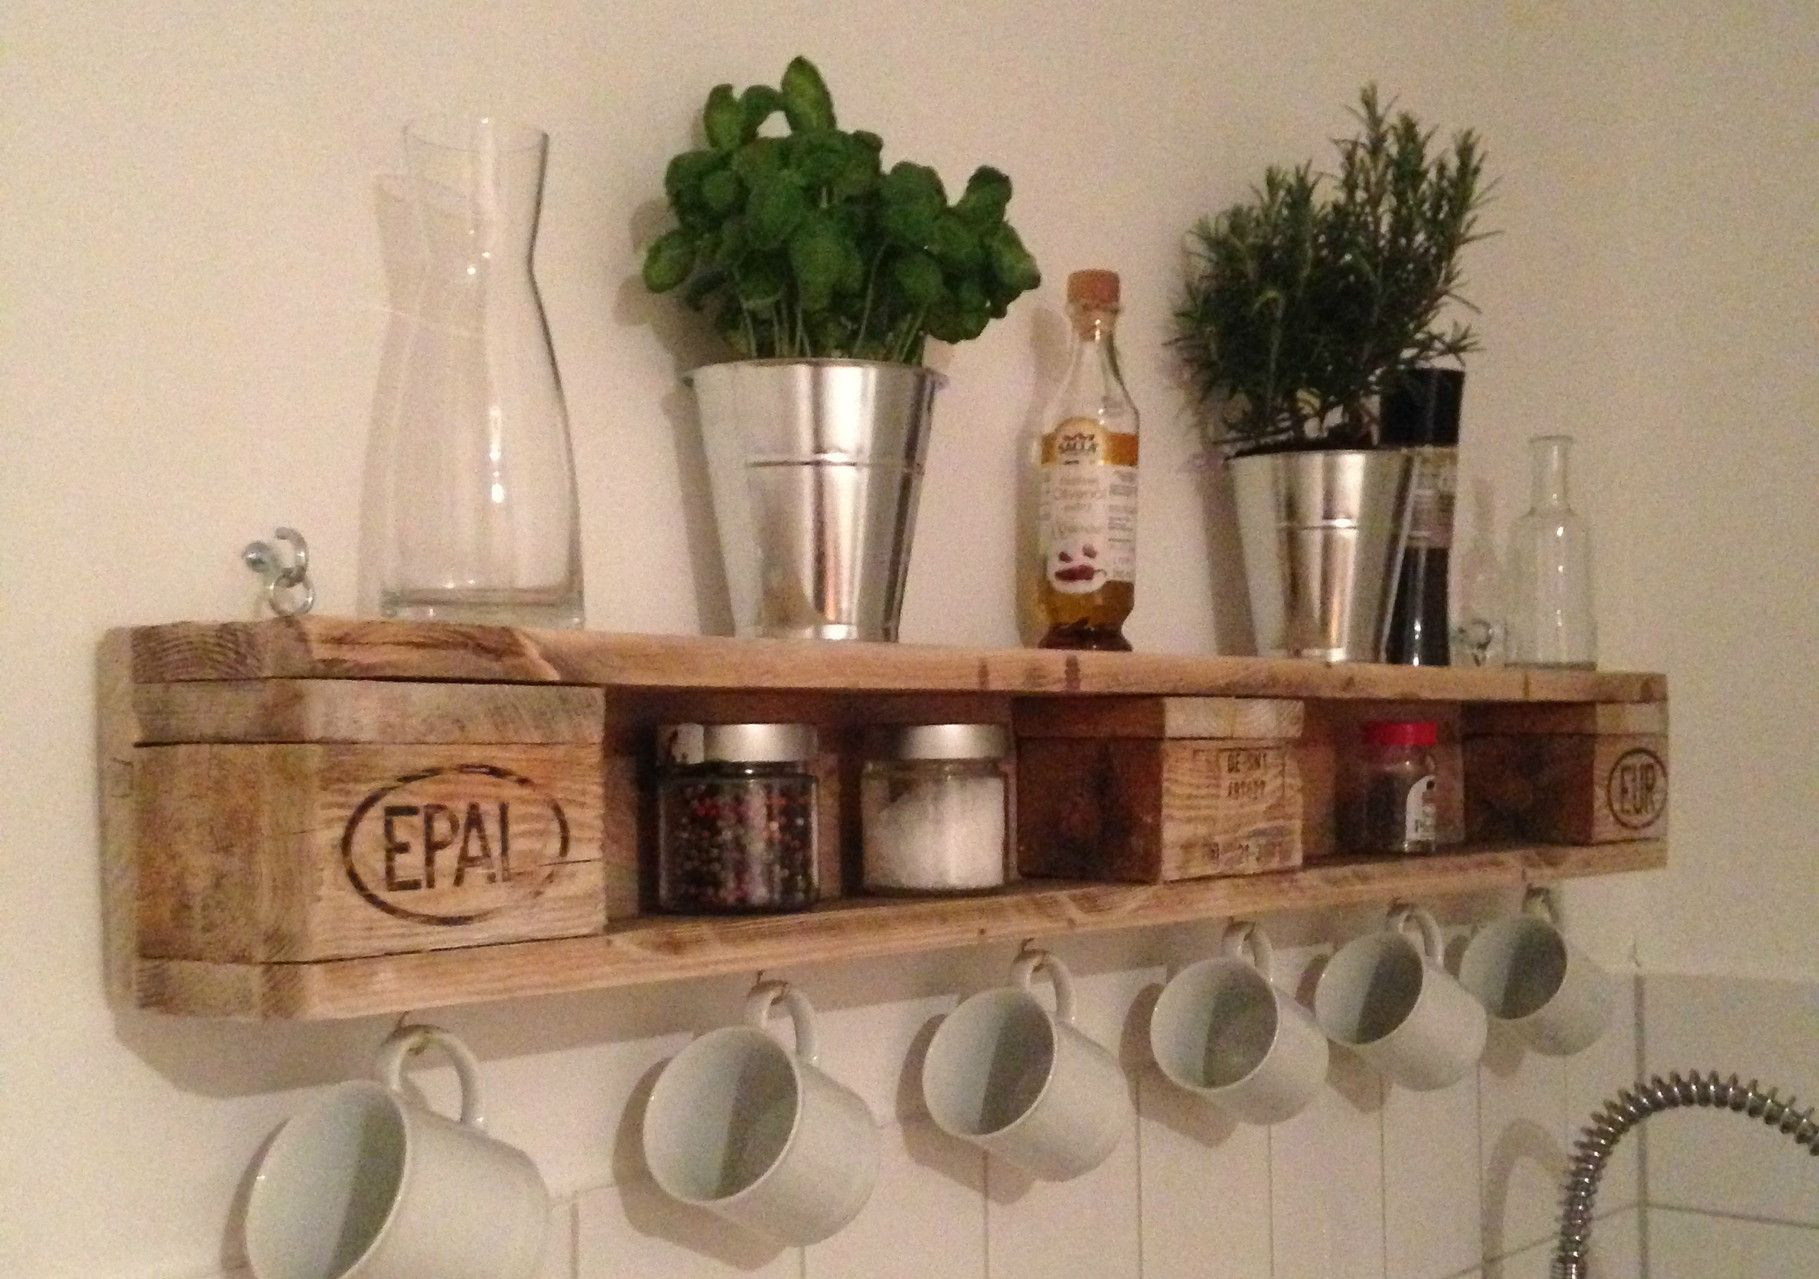 DIY Wandregal Aus Europaletten #europalette #kitchen